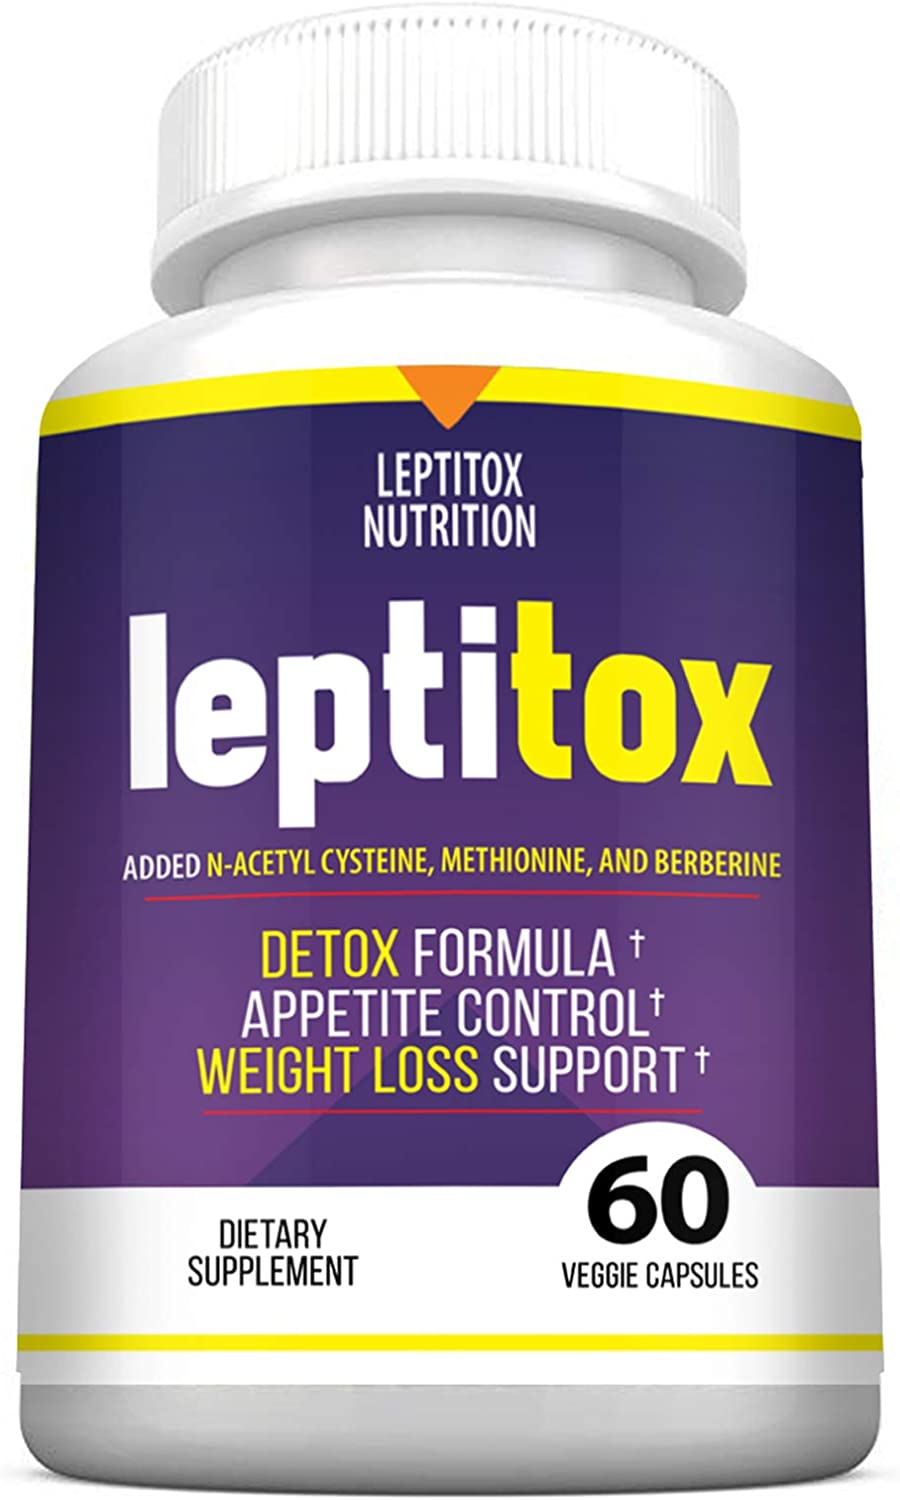 Verified Coupon Leptitox June 2020